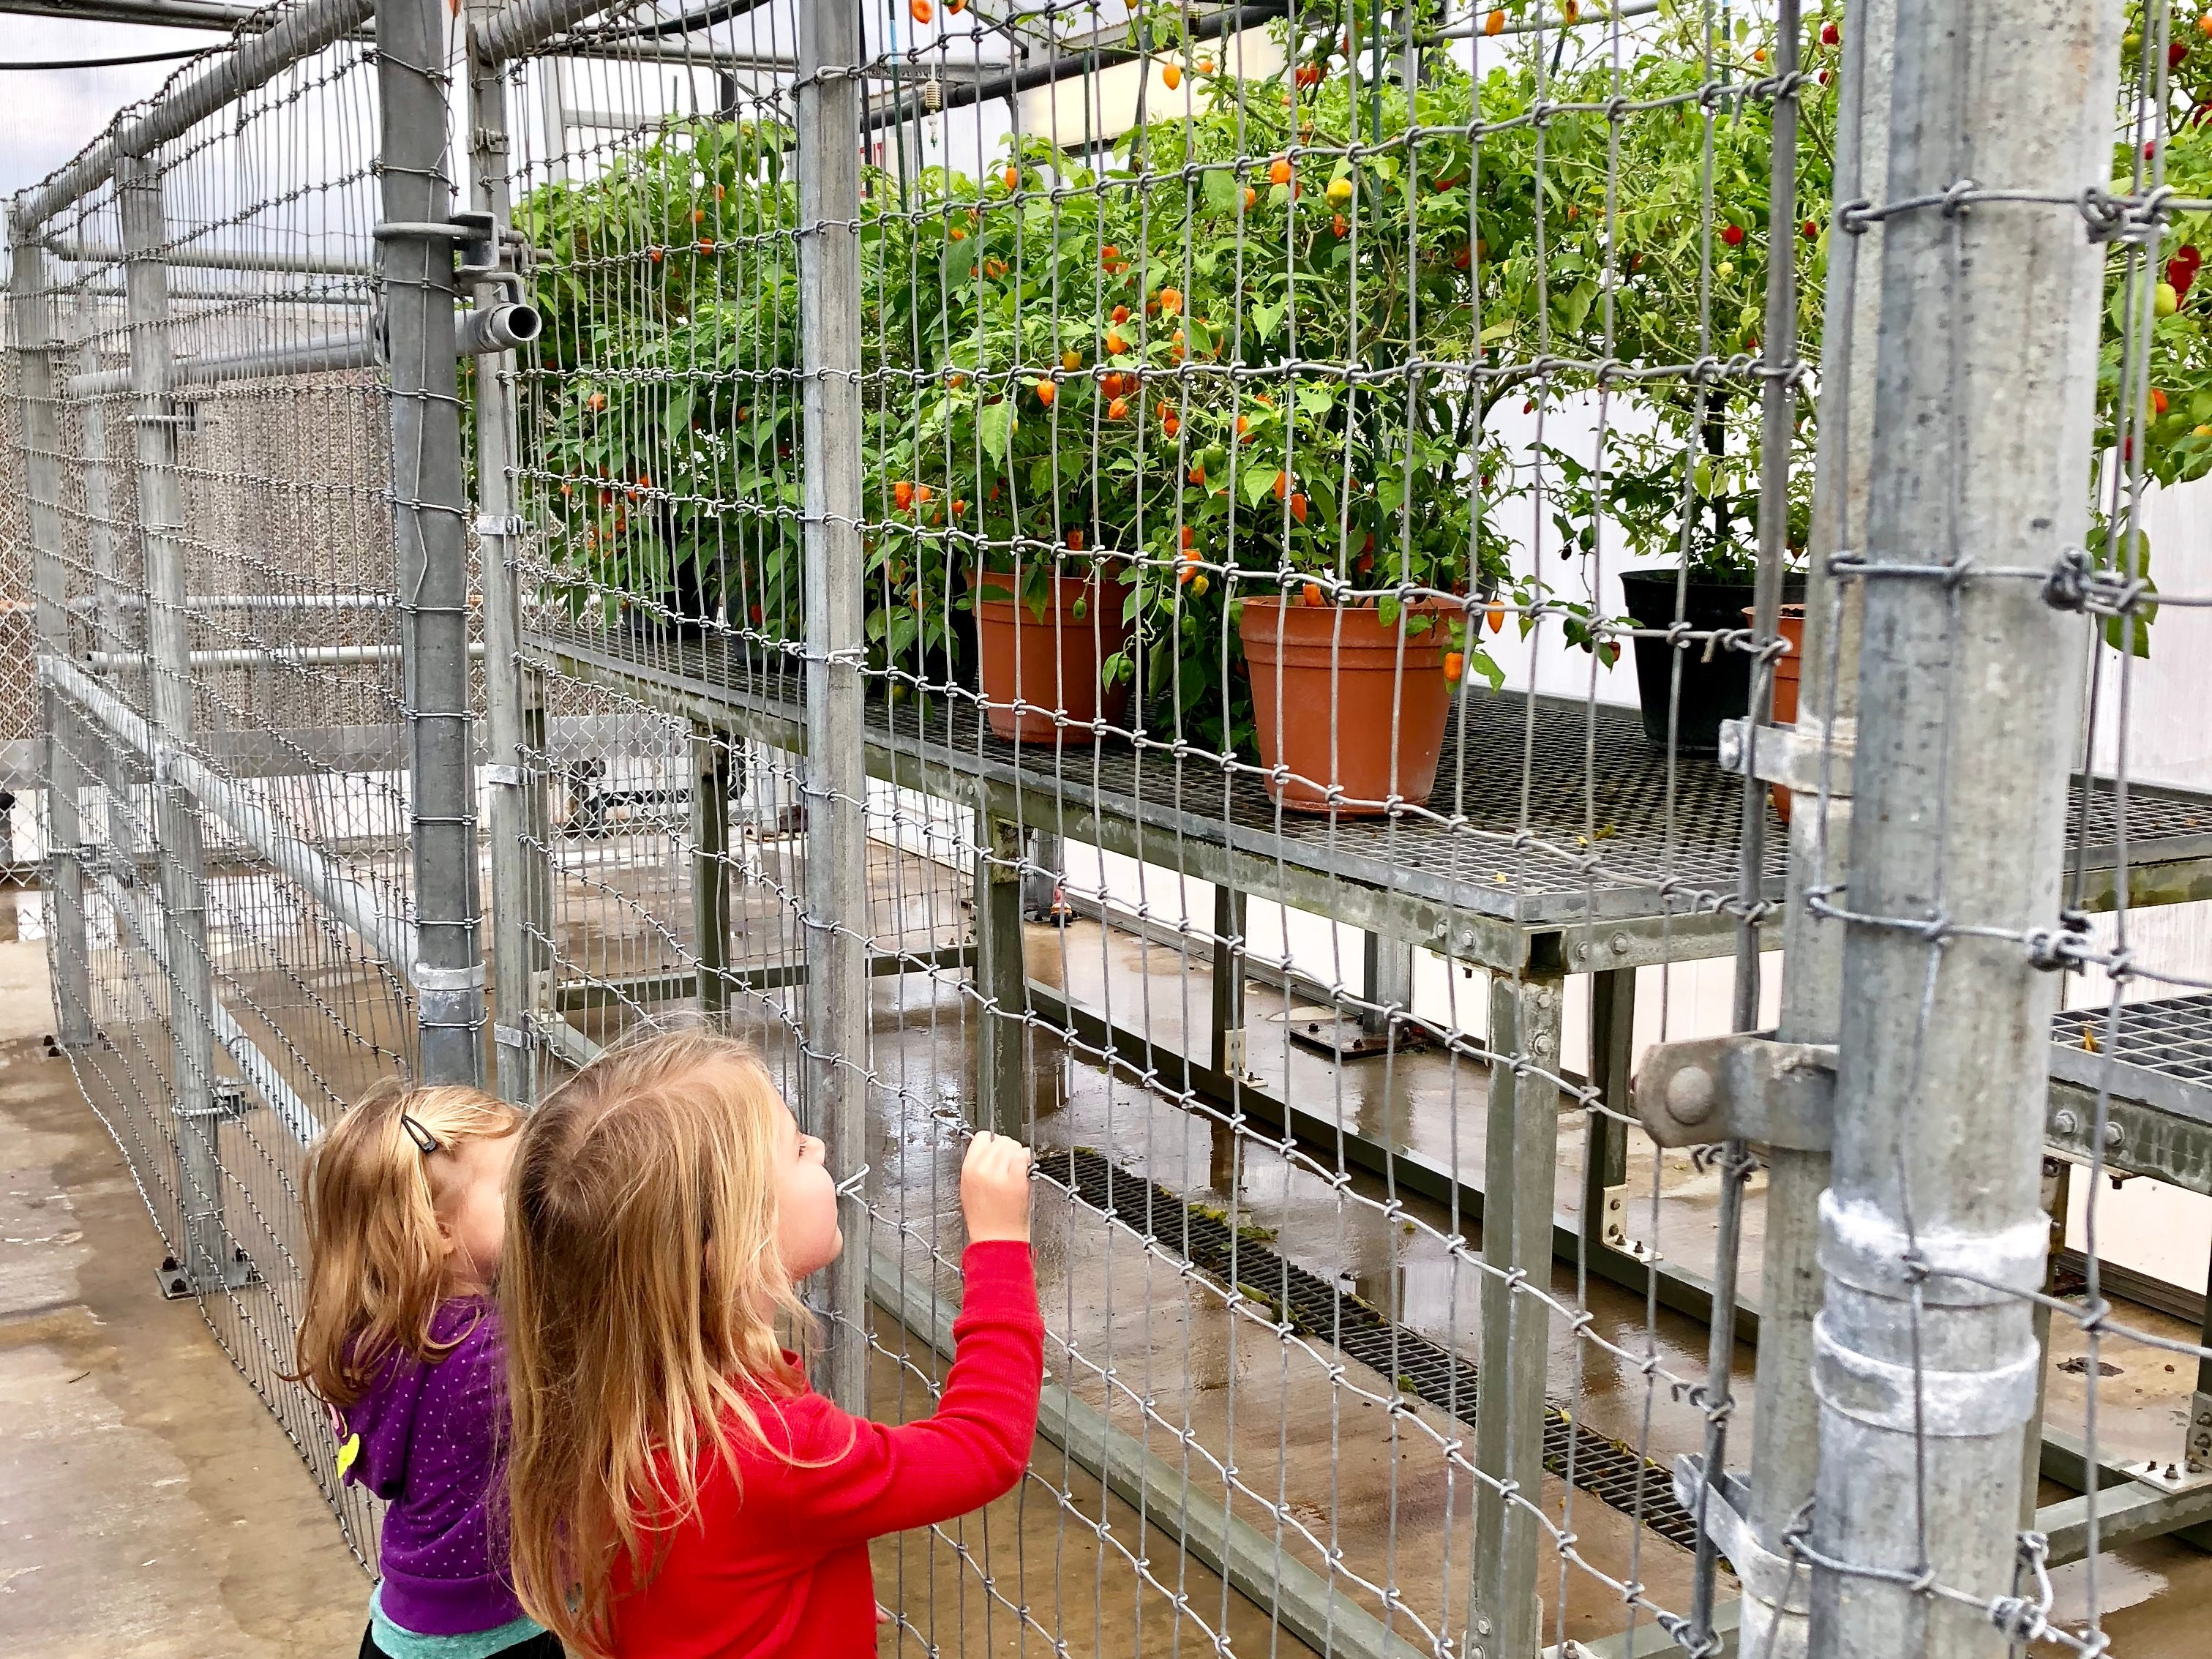 Avery and Marie Guidry check out growing peppers in a greenhouse at the Tabasco plant at Avery Island as they explore the Bayou Teche Byway with their family.